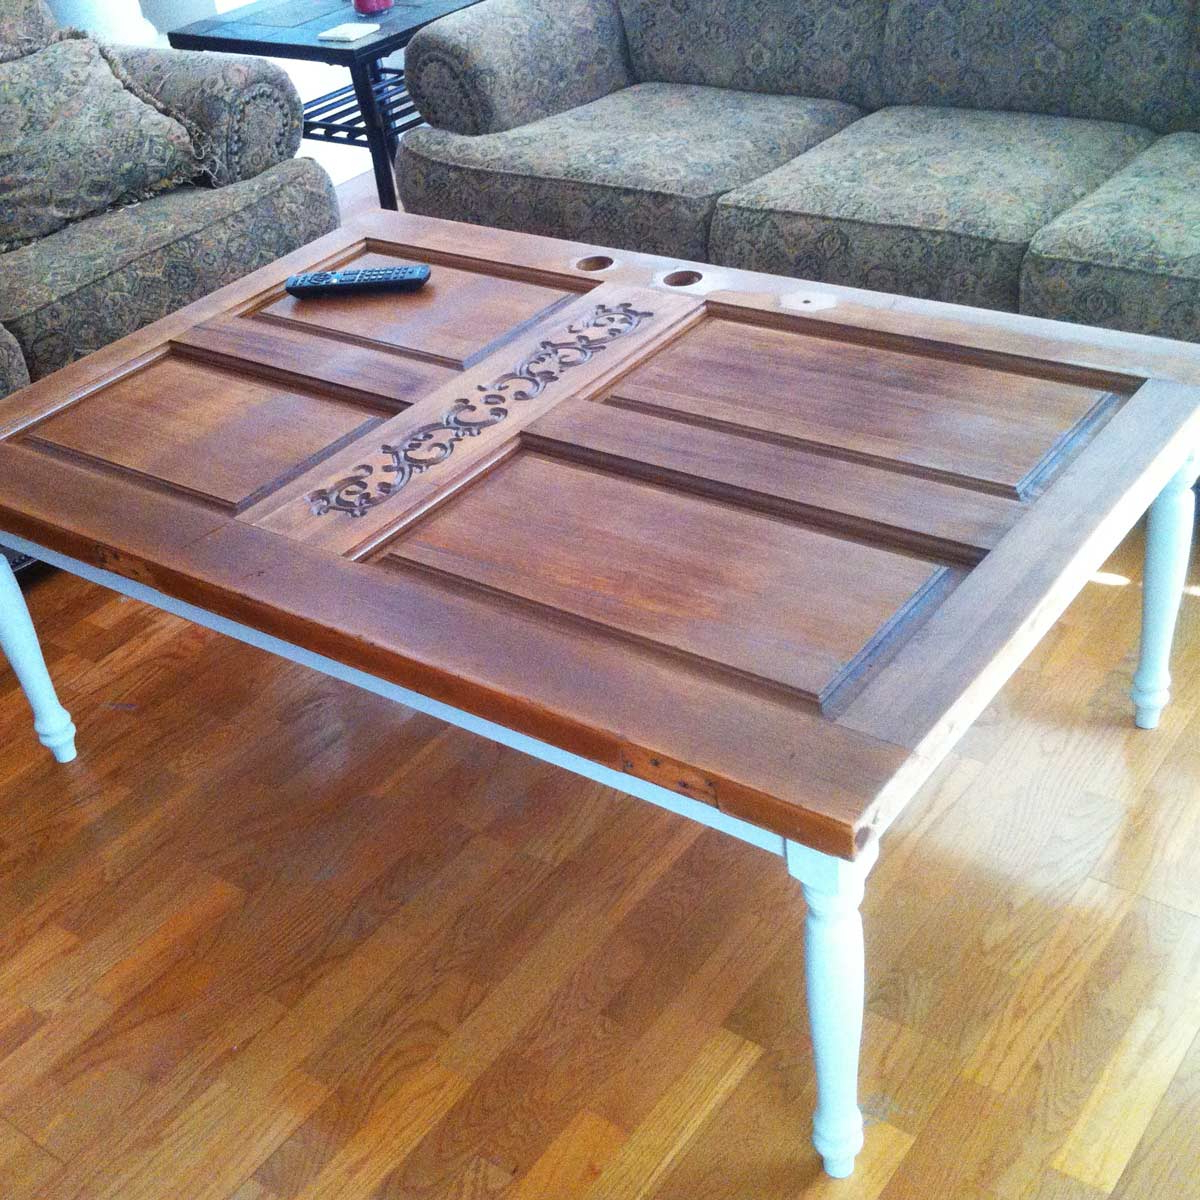 Natural 2 Drawer Shutter Coffee Tables Intended For Popular 14 Super Cool Homemade Coffee Table Ideas — The Family Handyman (View 12 of 20)